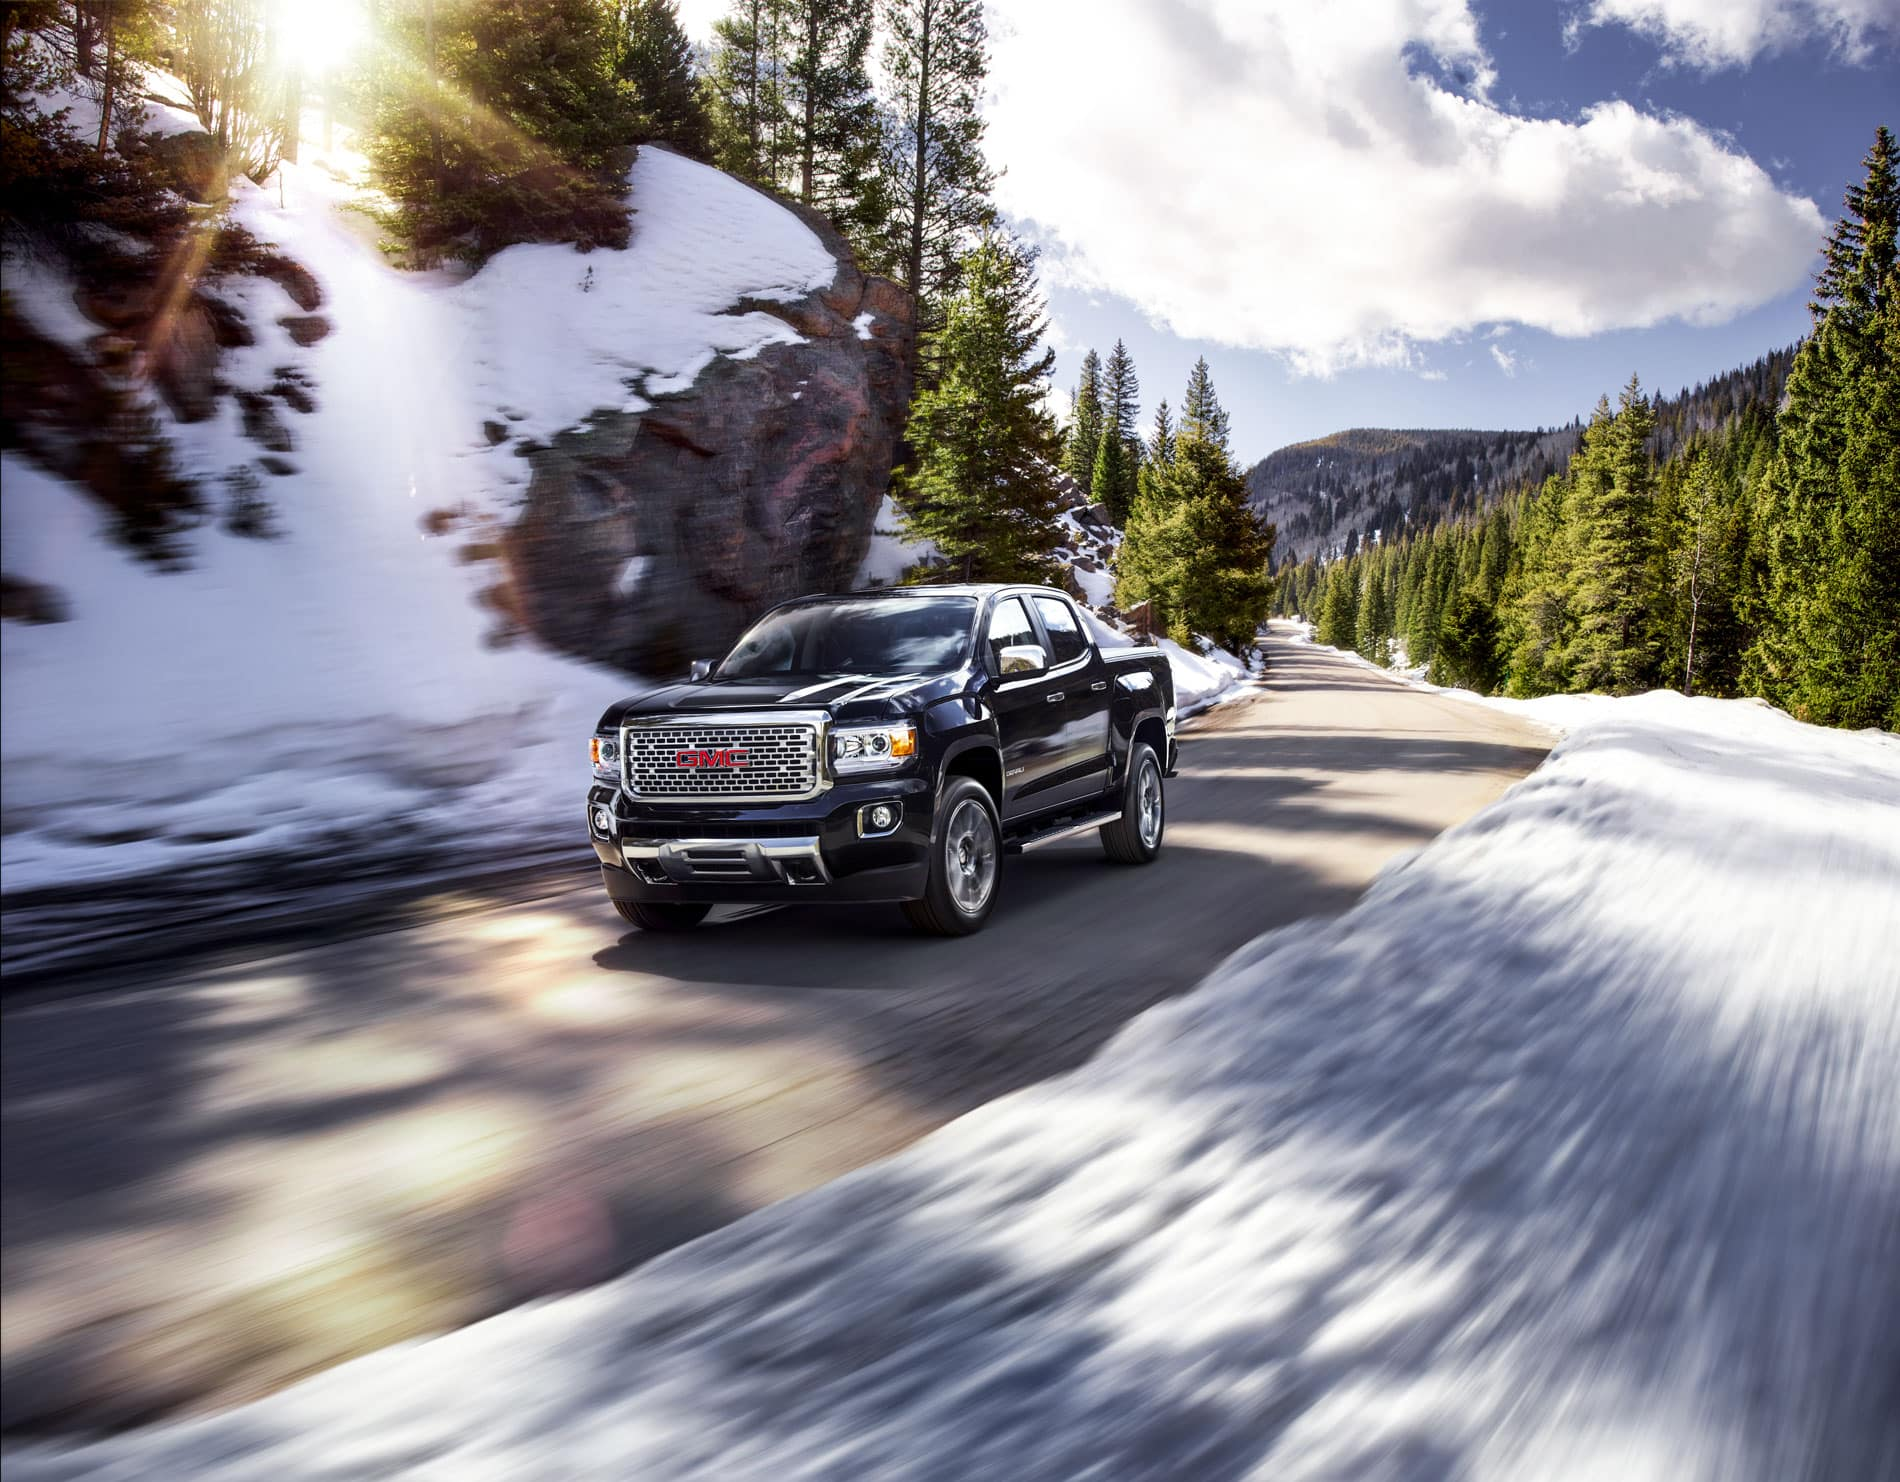 Gmc Canyon Vs Ford Ranger Blast From The Past Rivalry A View Of Cadilac Escalade Wiring Harness For 2009 Exploded Midsize Truck Range Rarely Offers Tons Engine And Transmission Options But Bucks That Trend Three